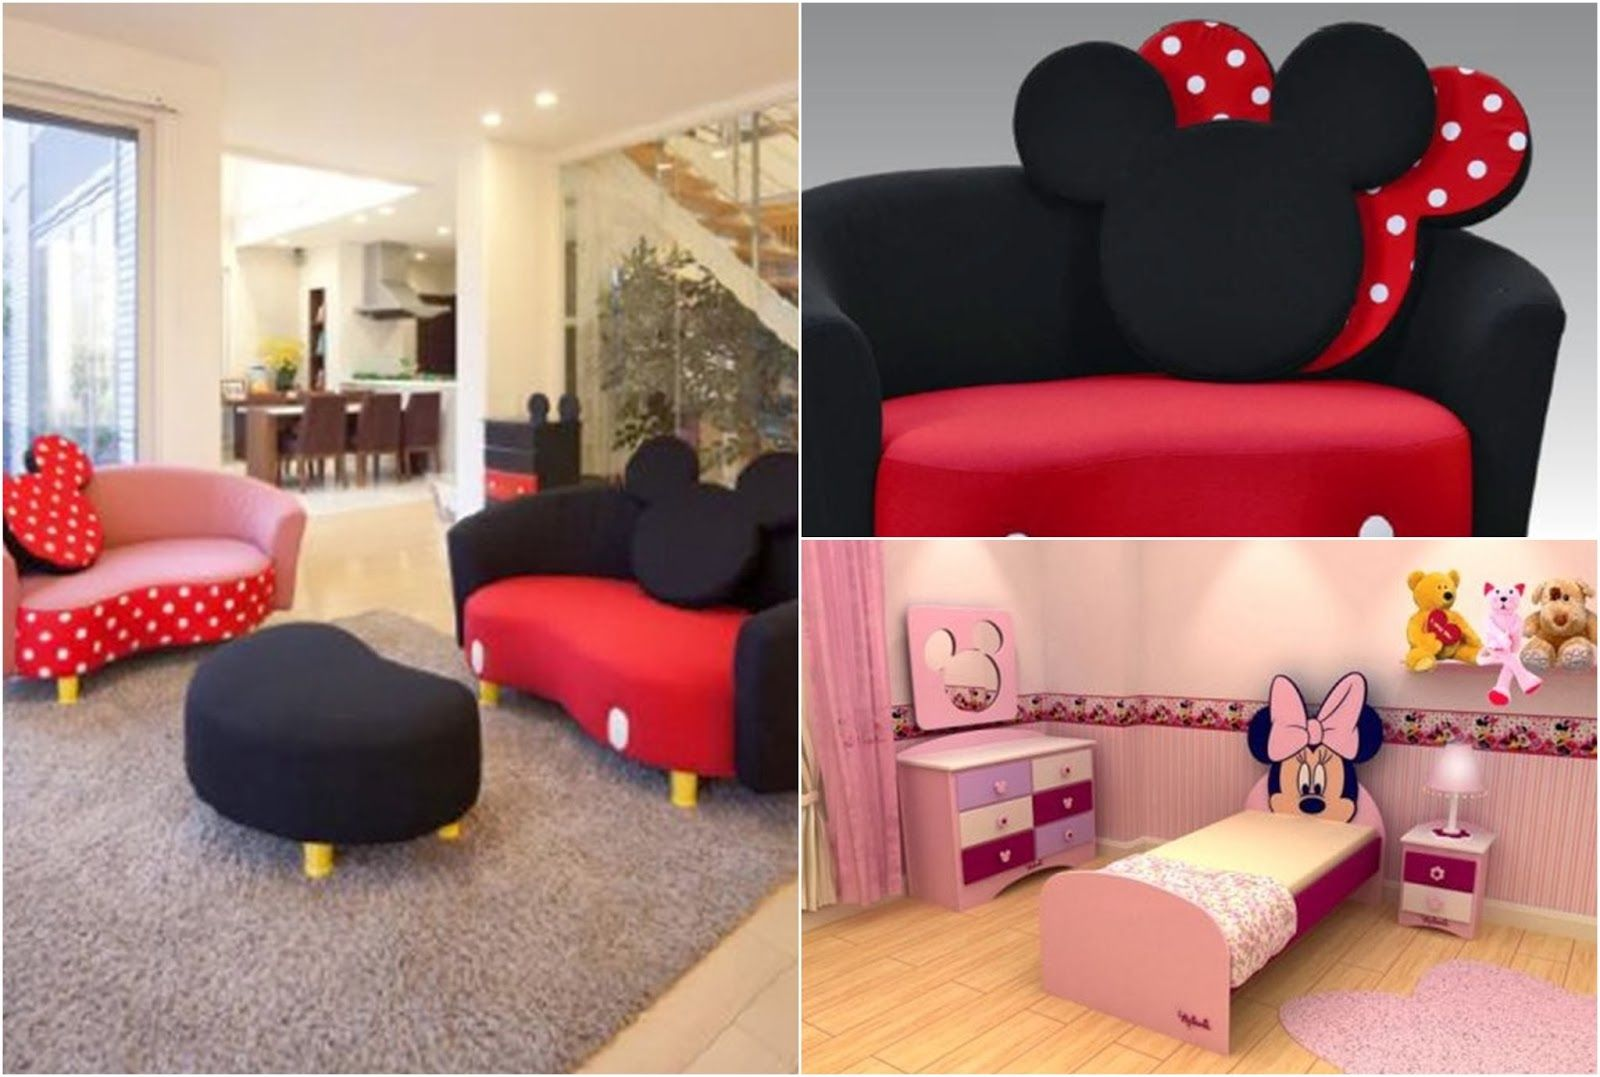 Dormitorio Barbie Dormitorio Temático Minnie Mouse By Artesydisenos Blogspot